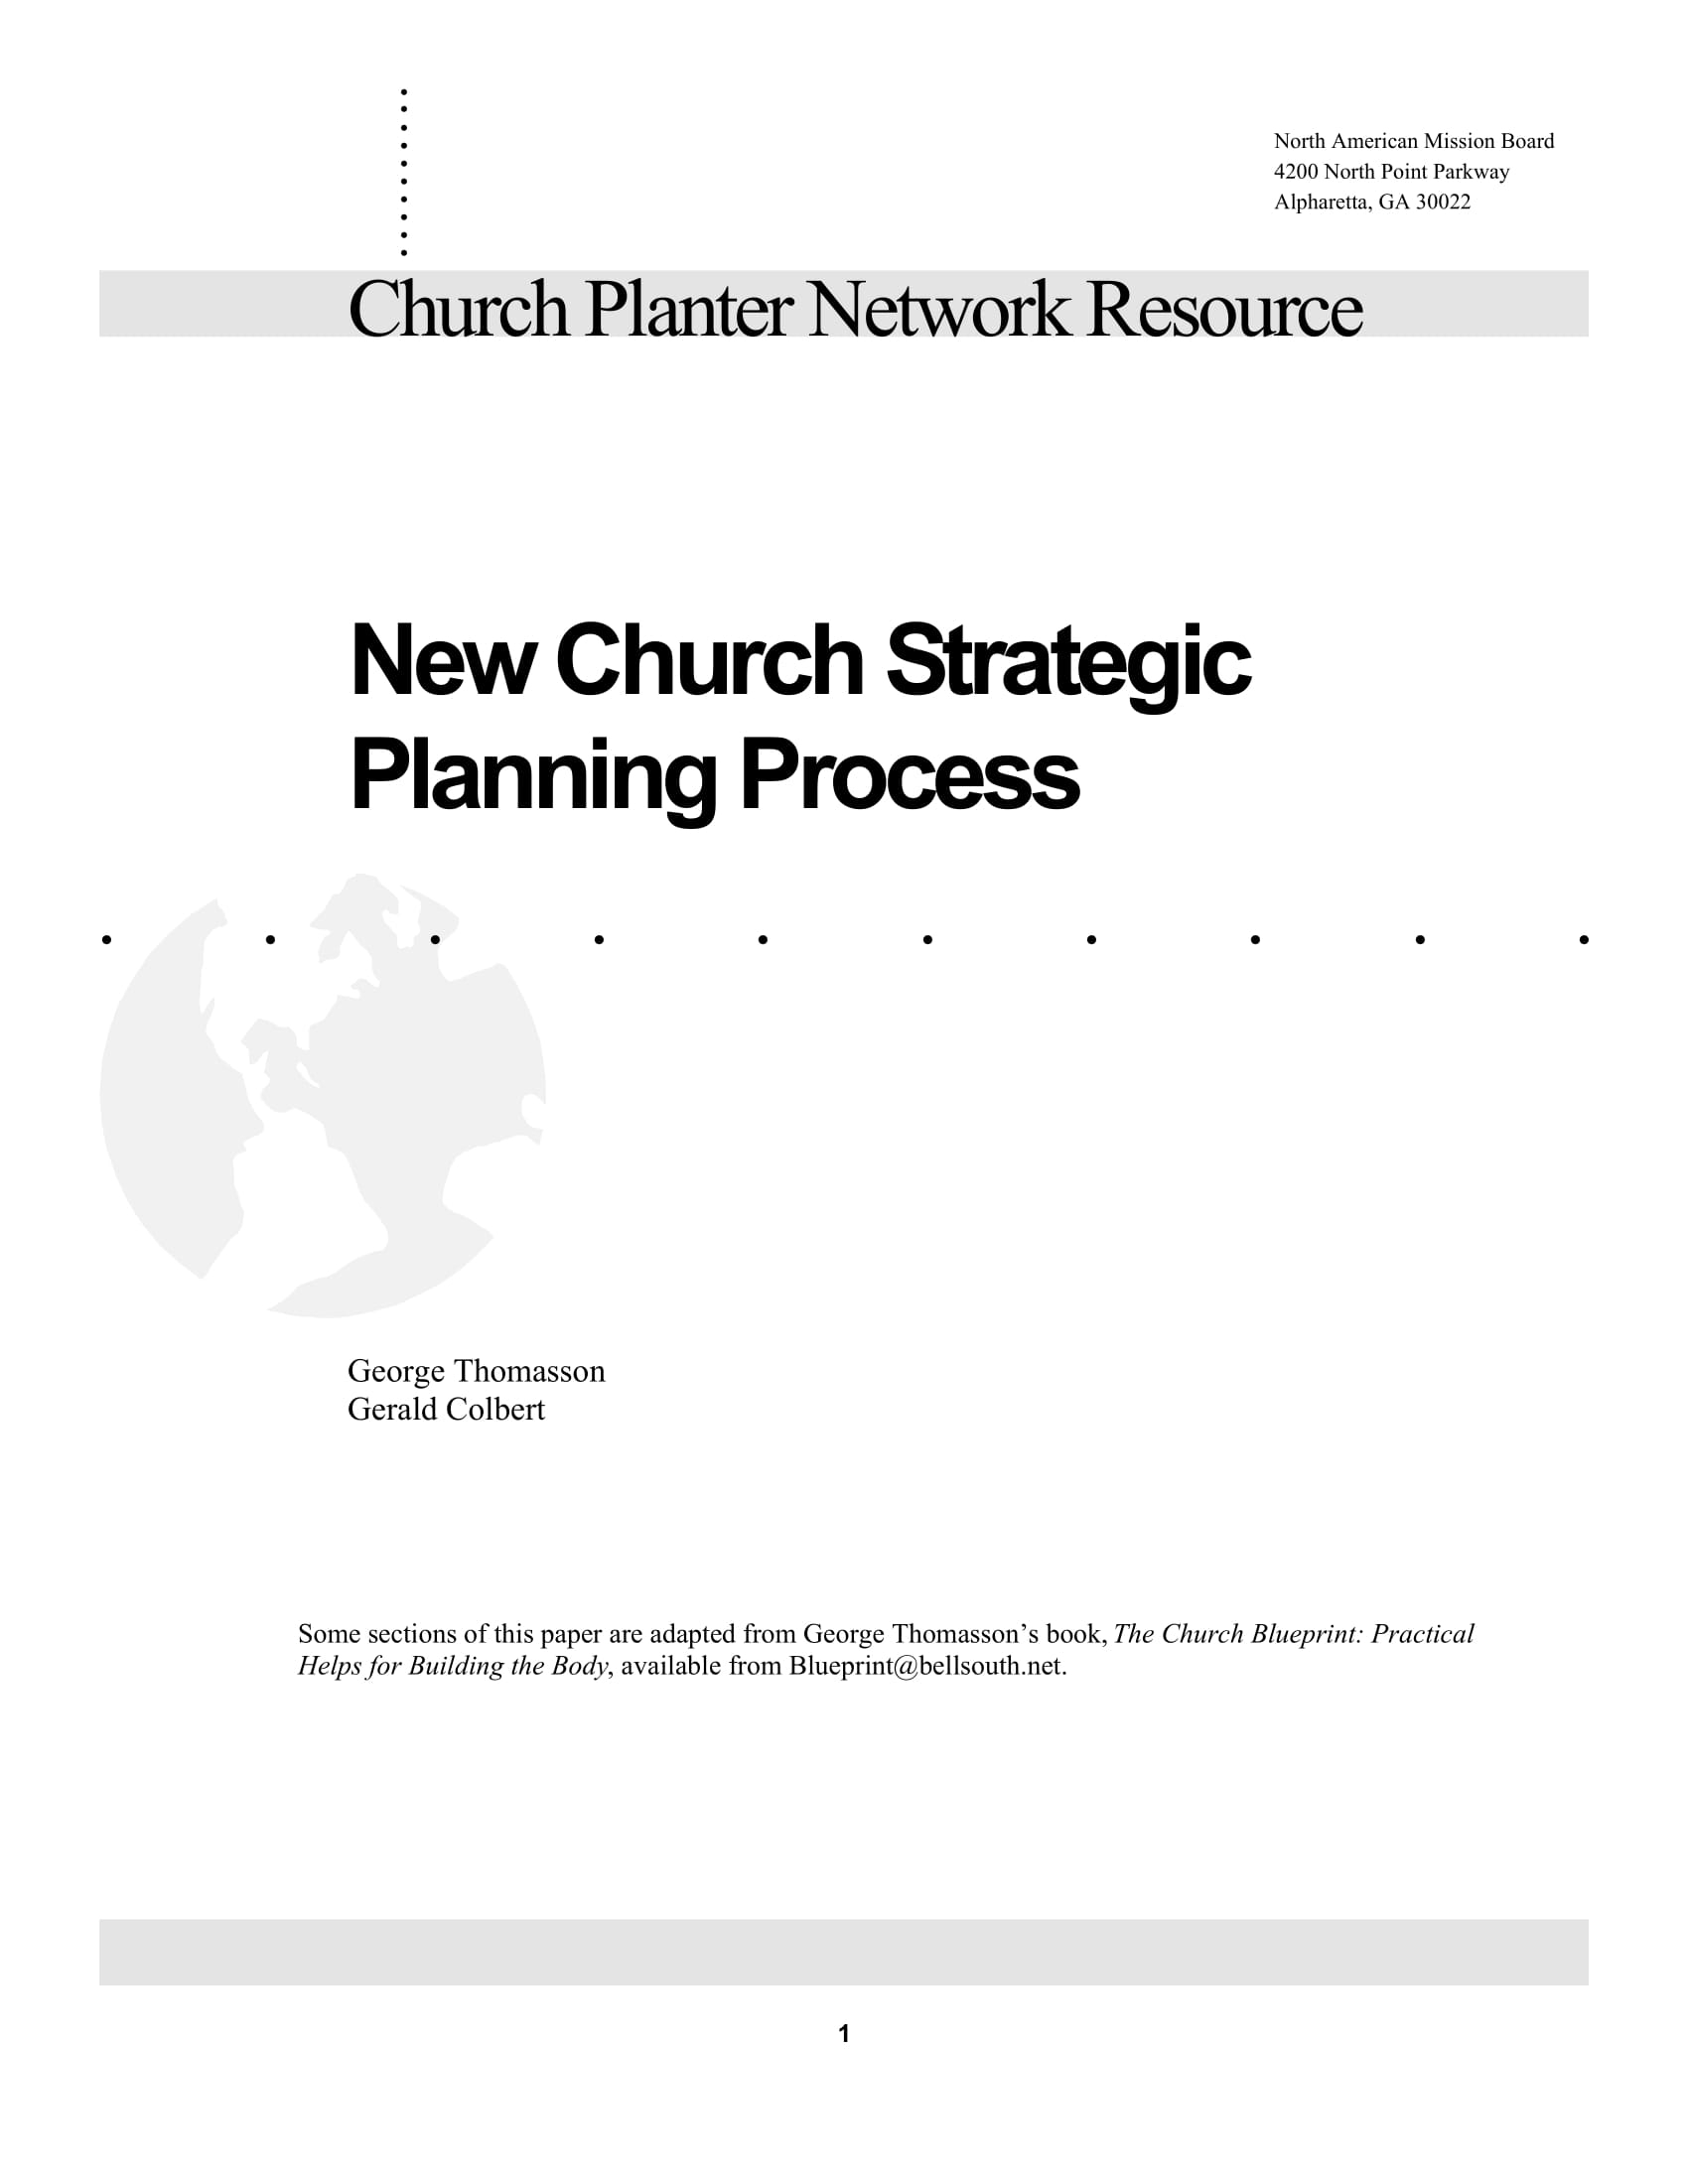 new church strategic planning process example 01